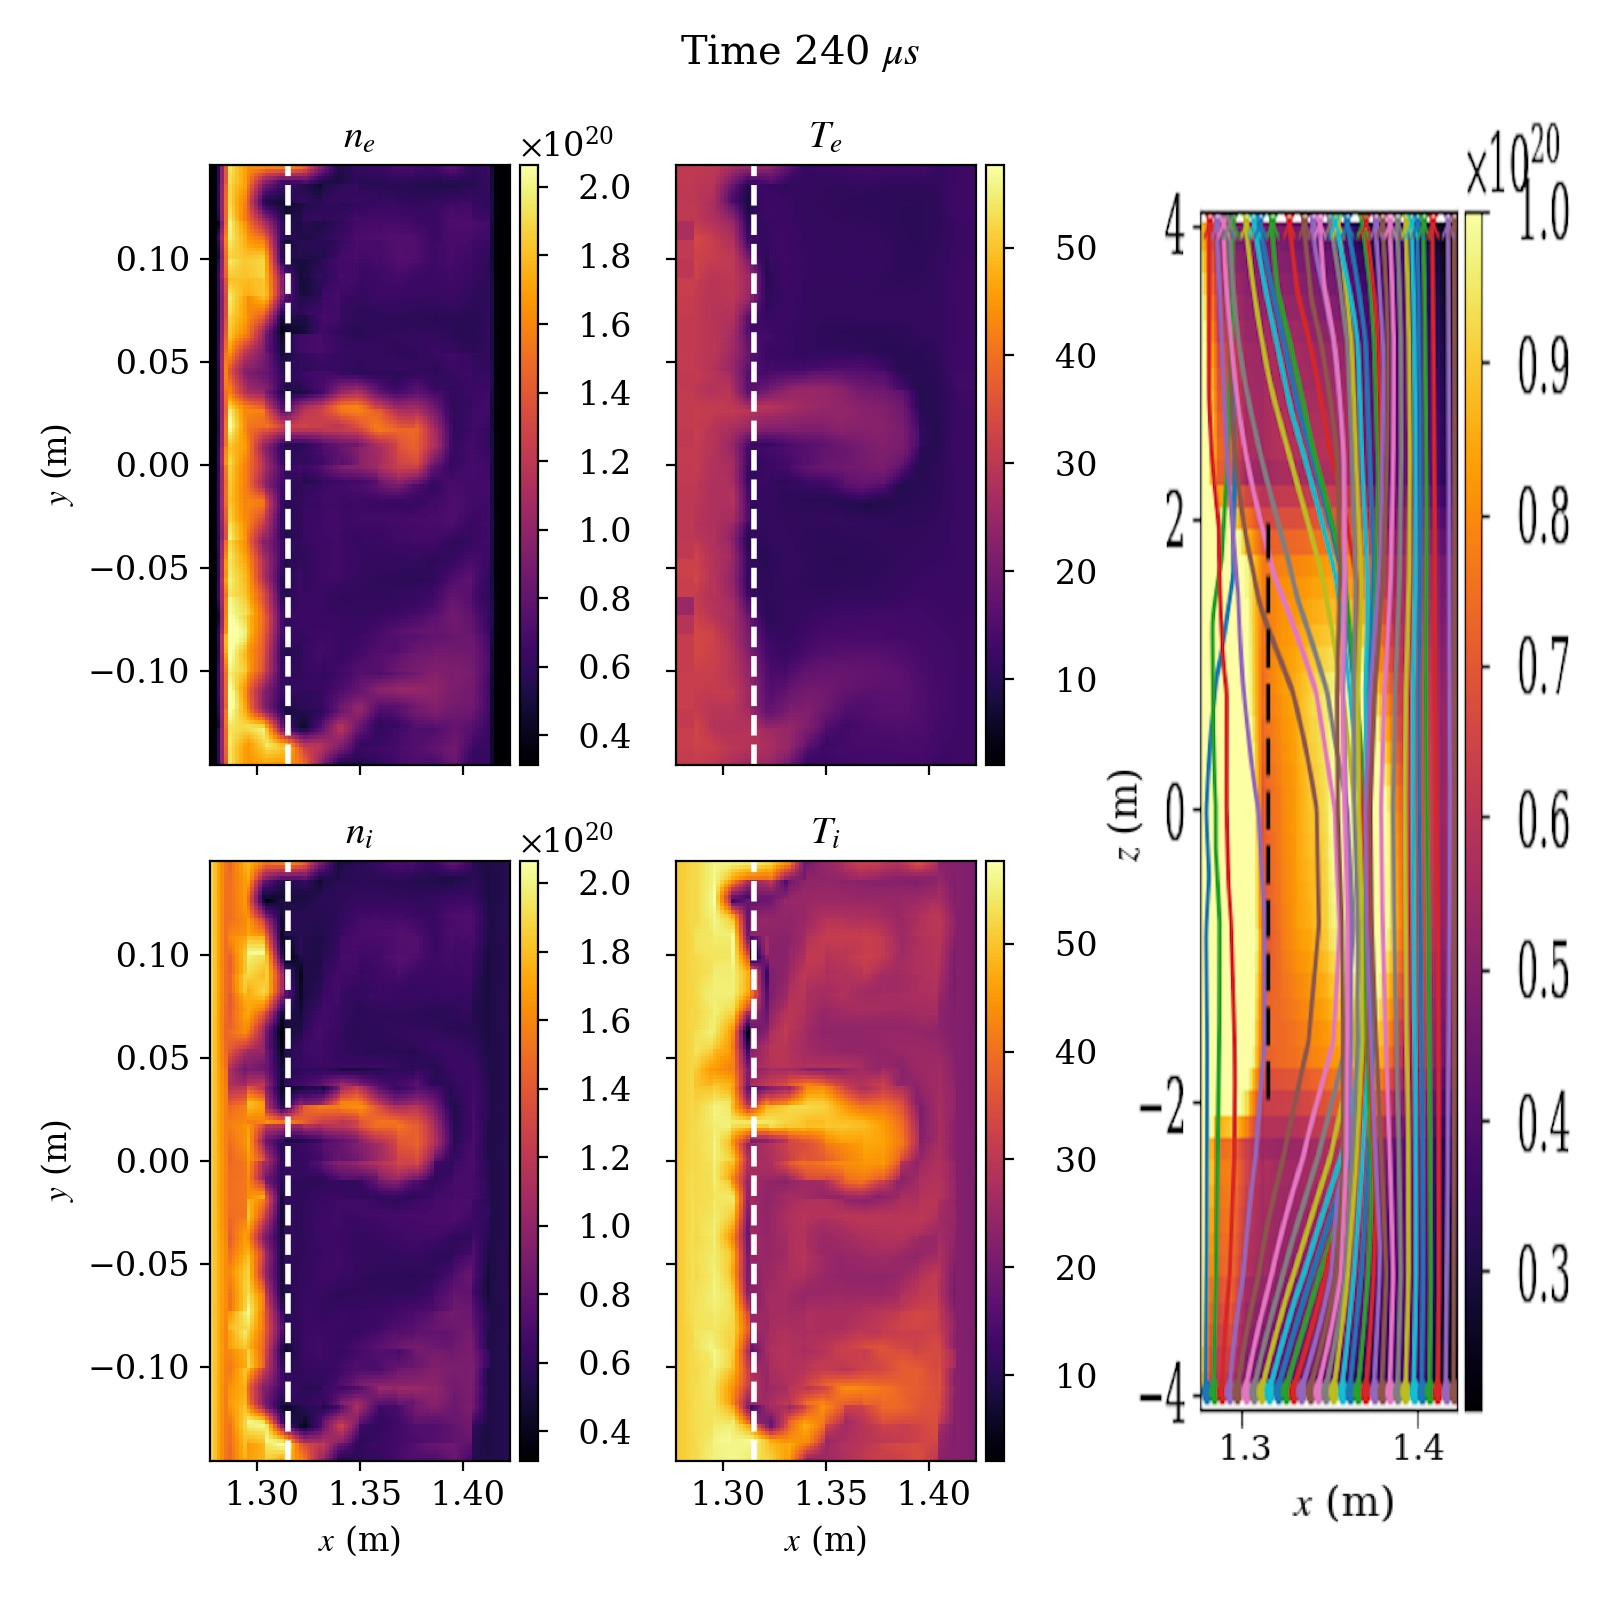 Full-f electromagnetic simulation of a helical model scrap-off-layer plasma. Shown are the density (left) and temperature (middle) for electrons (top) and ions (bottom). The dashed line is where the source terms are applied. Intermittent blob-like structures are seen that are ejected from the source region and propagate outwards.  The right figure shows magnetic field lines in a (radial, vertical) projection being bent by blobs near the midplane (at an earlier time t=240 μs). Note the z and x axes are not to scale, rms dB/B~10%